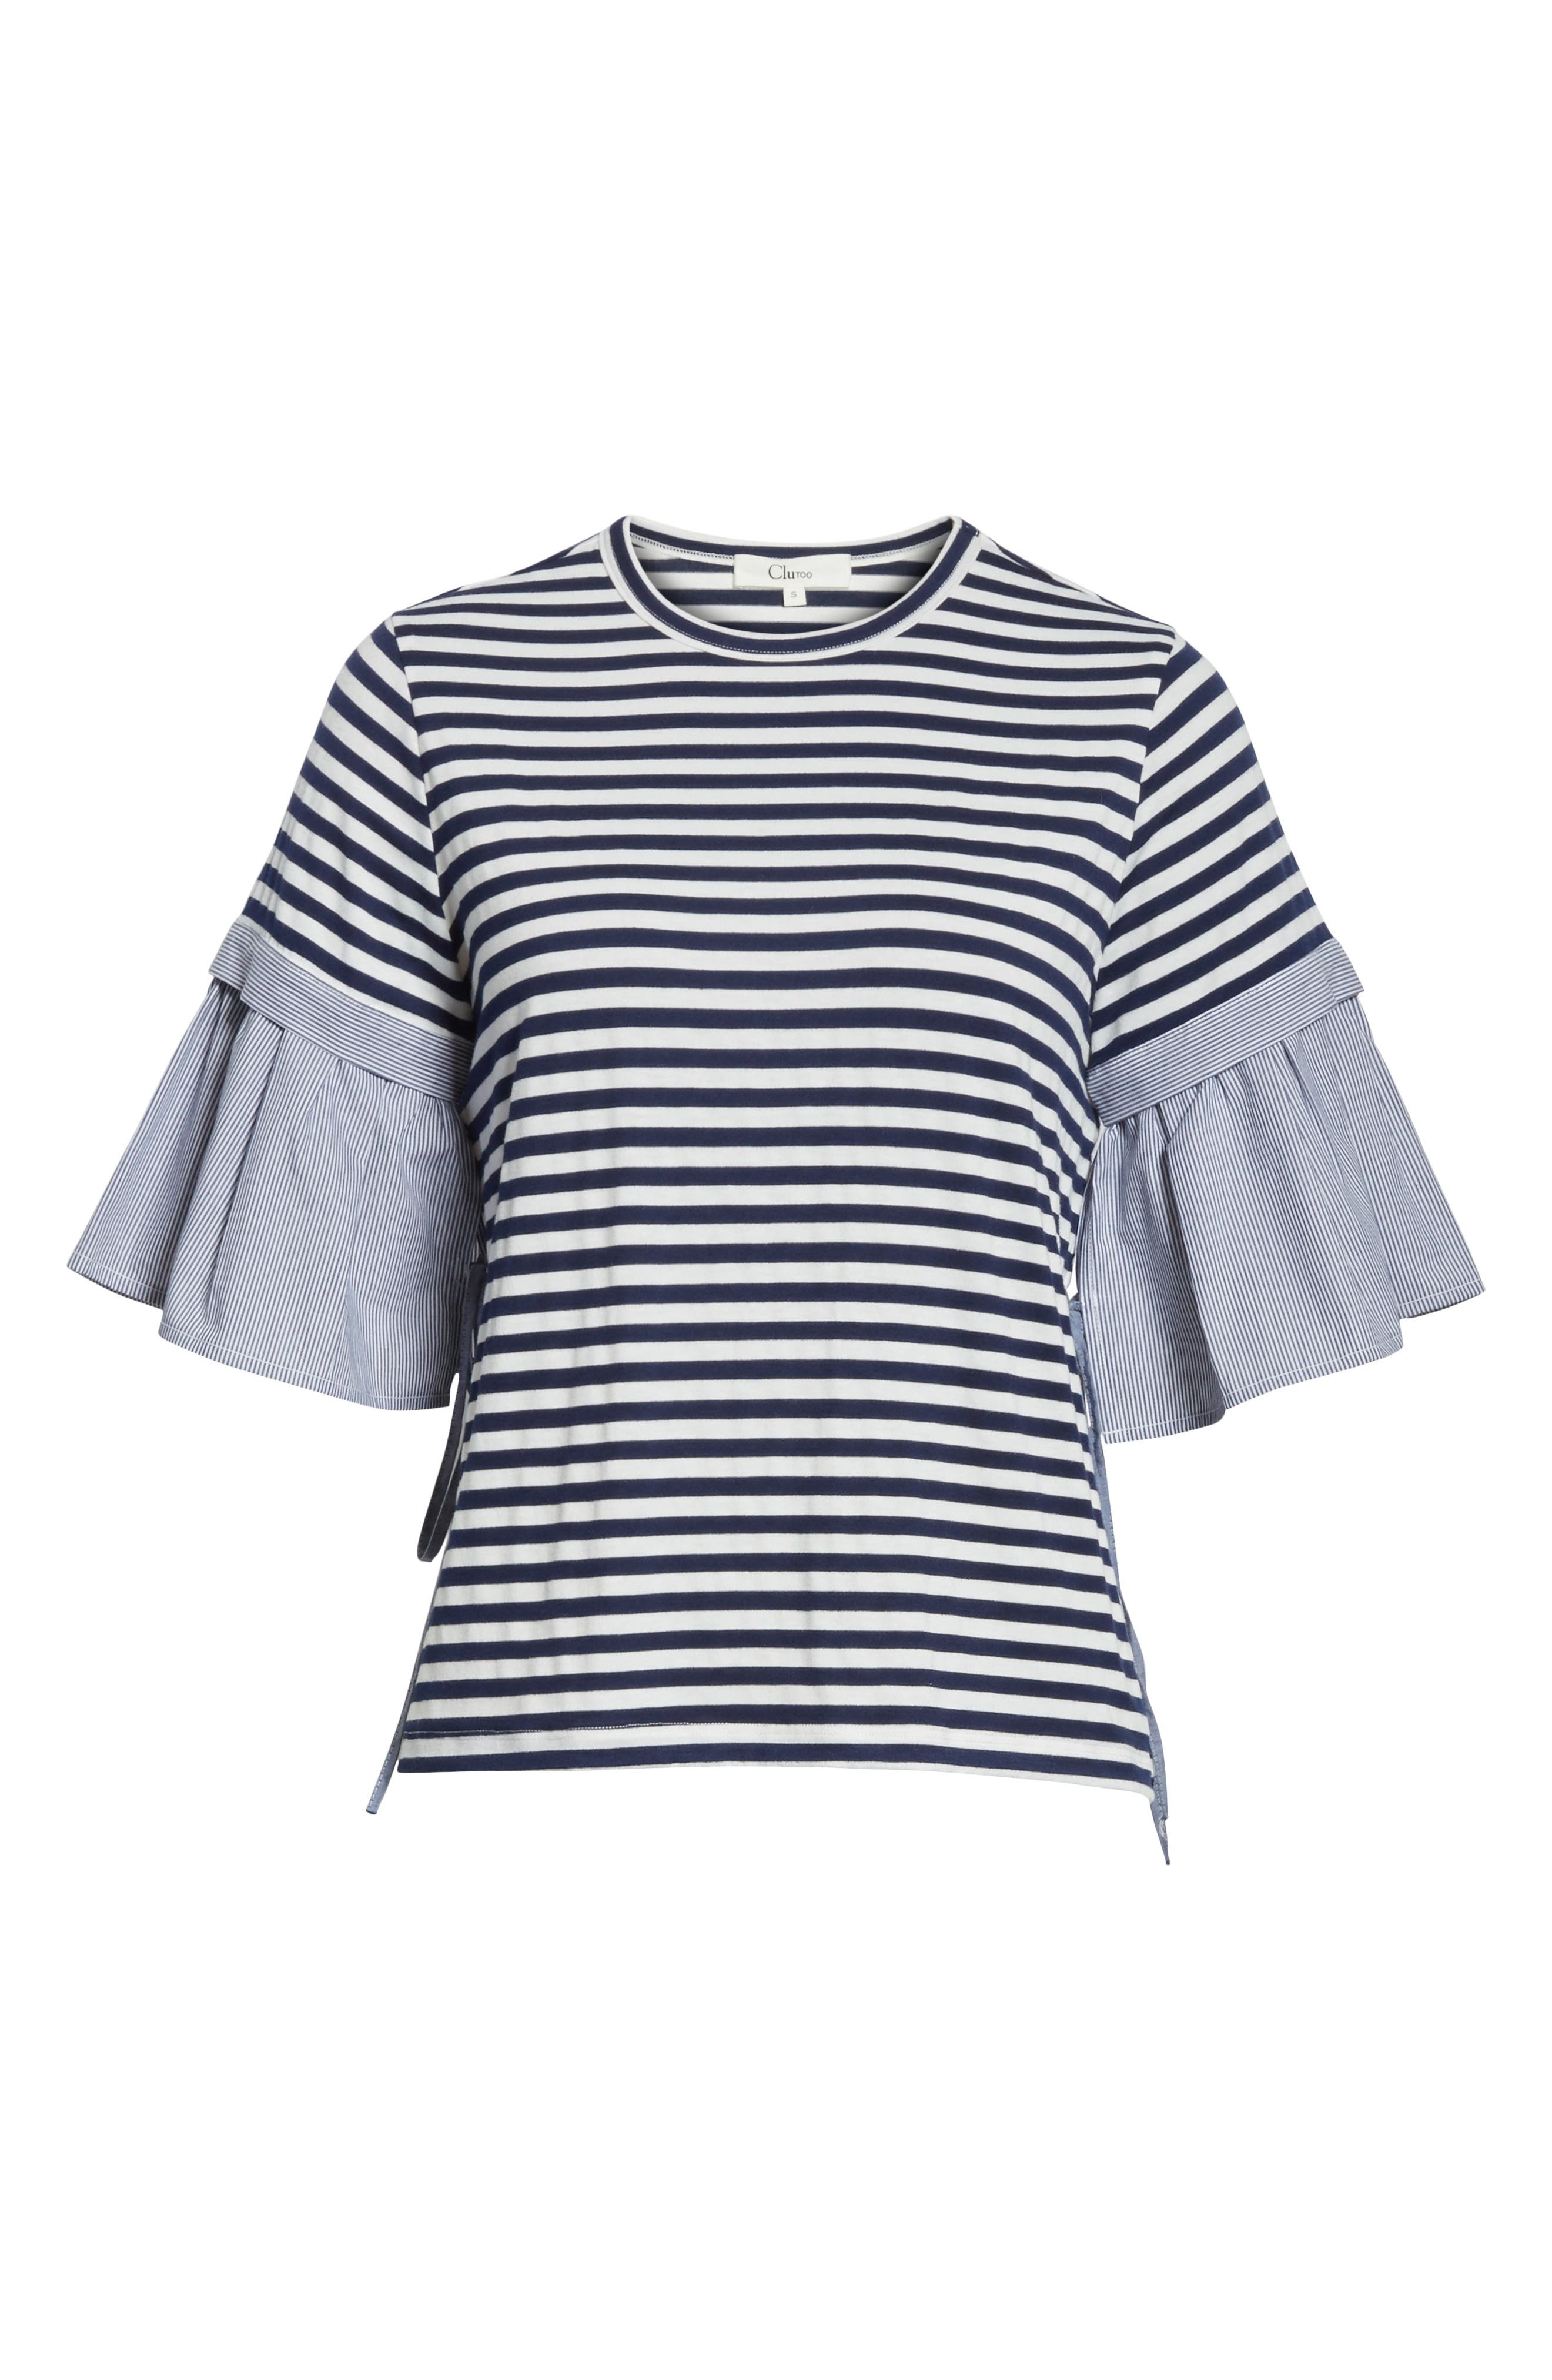 Ruffle Sleeve Stripe Tee,                             Alternate thumbnail 6, color,                             Navy